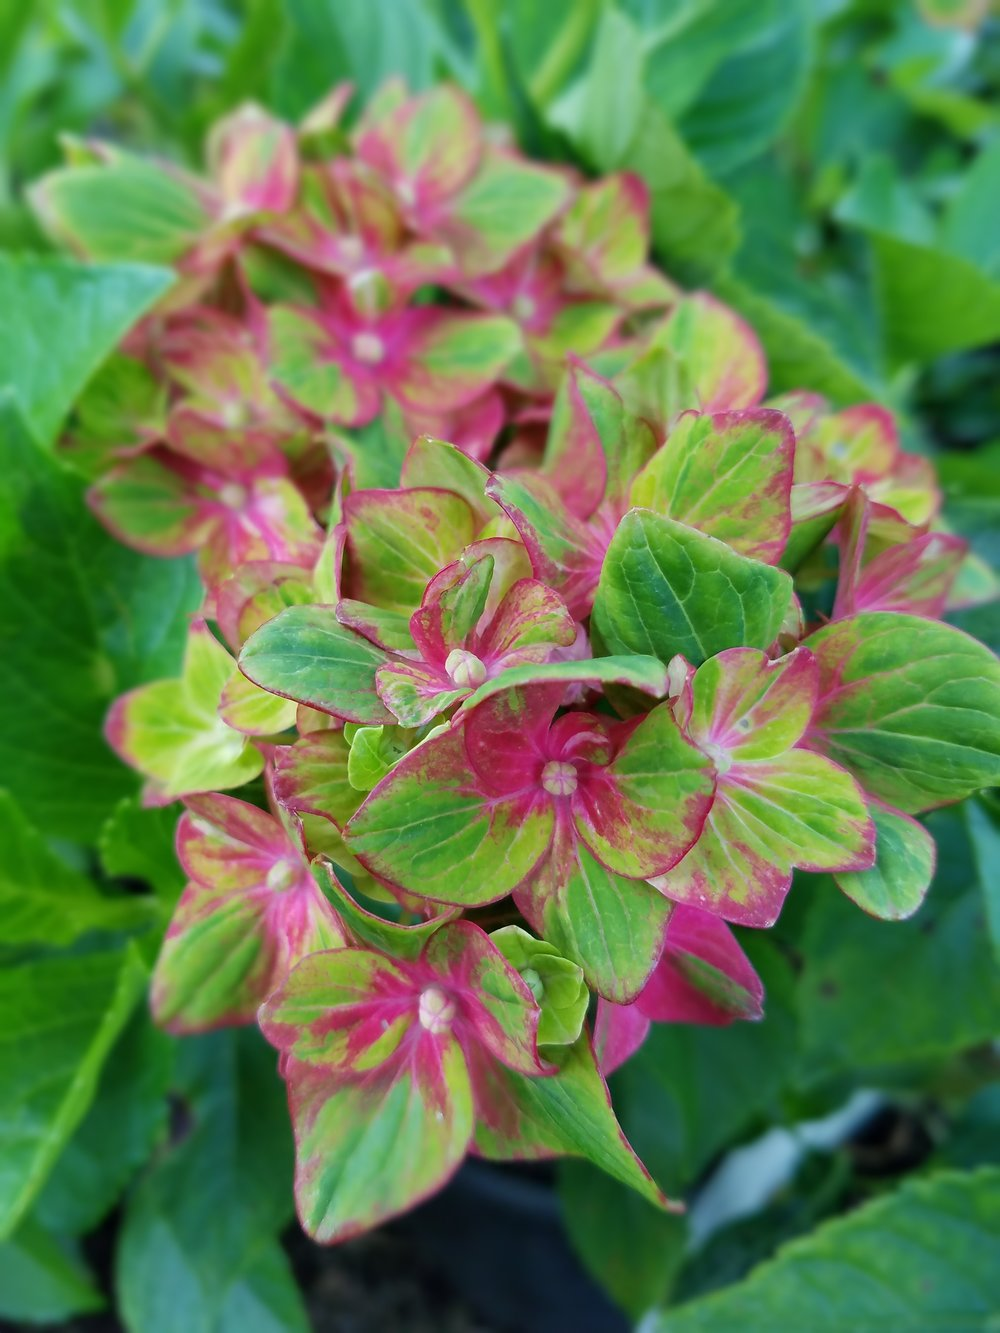 Hydrangea macrophylla 'Horwack'  or Pistachio hydrangea is taking the color of macrophyllas to new hues. Green turning dark pink and deep red, this shrub stays smaller and is a mophead (3' x 4-5').